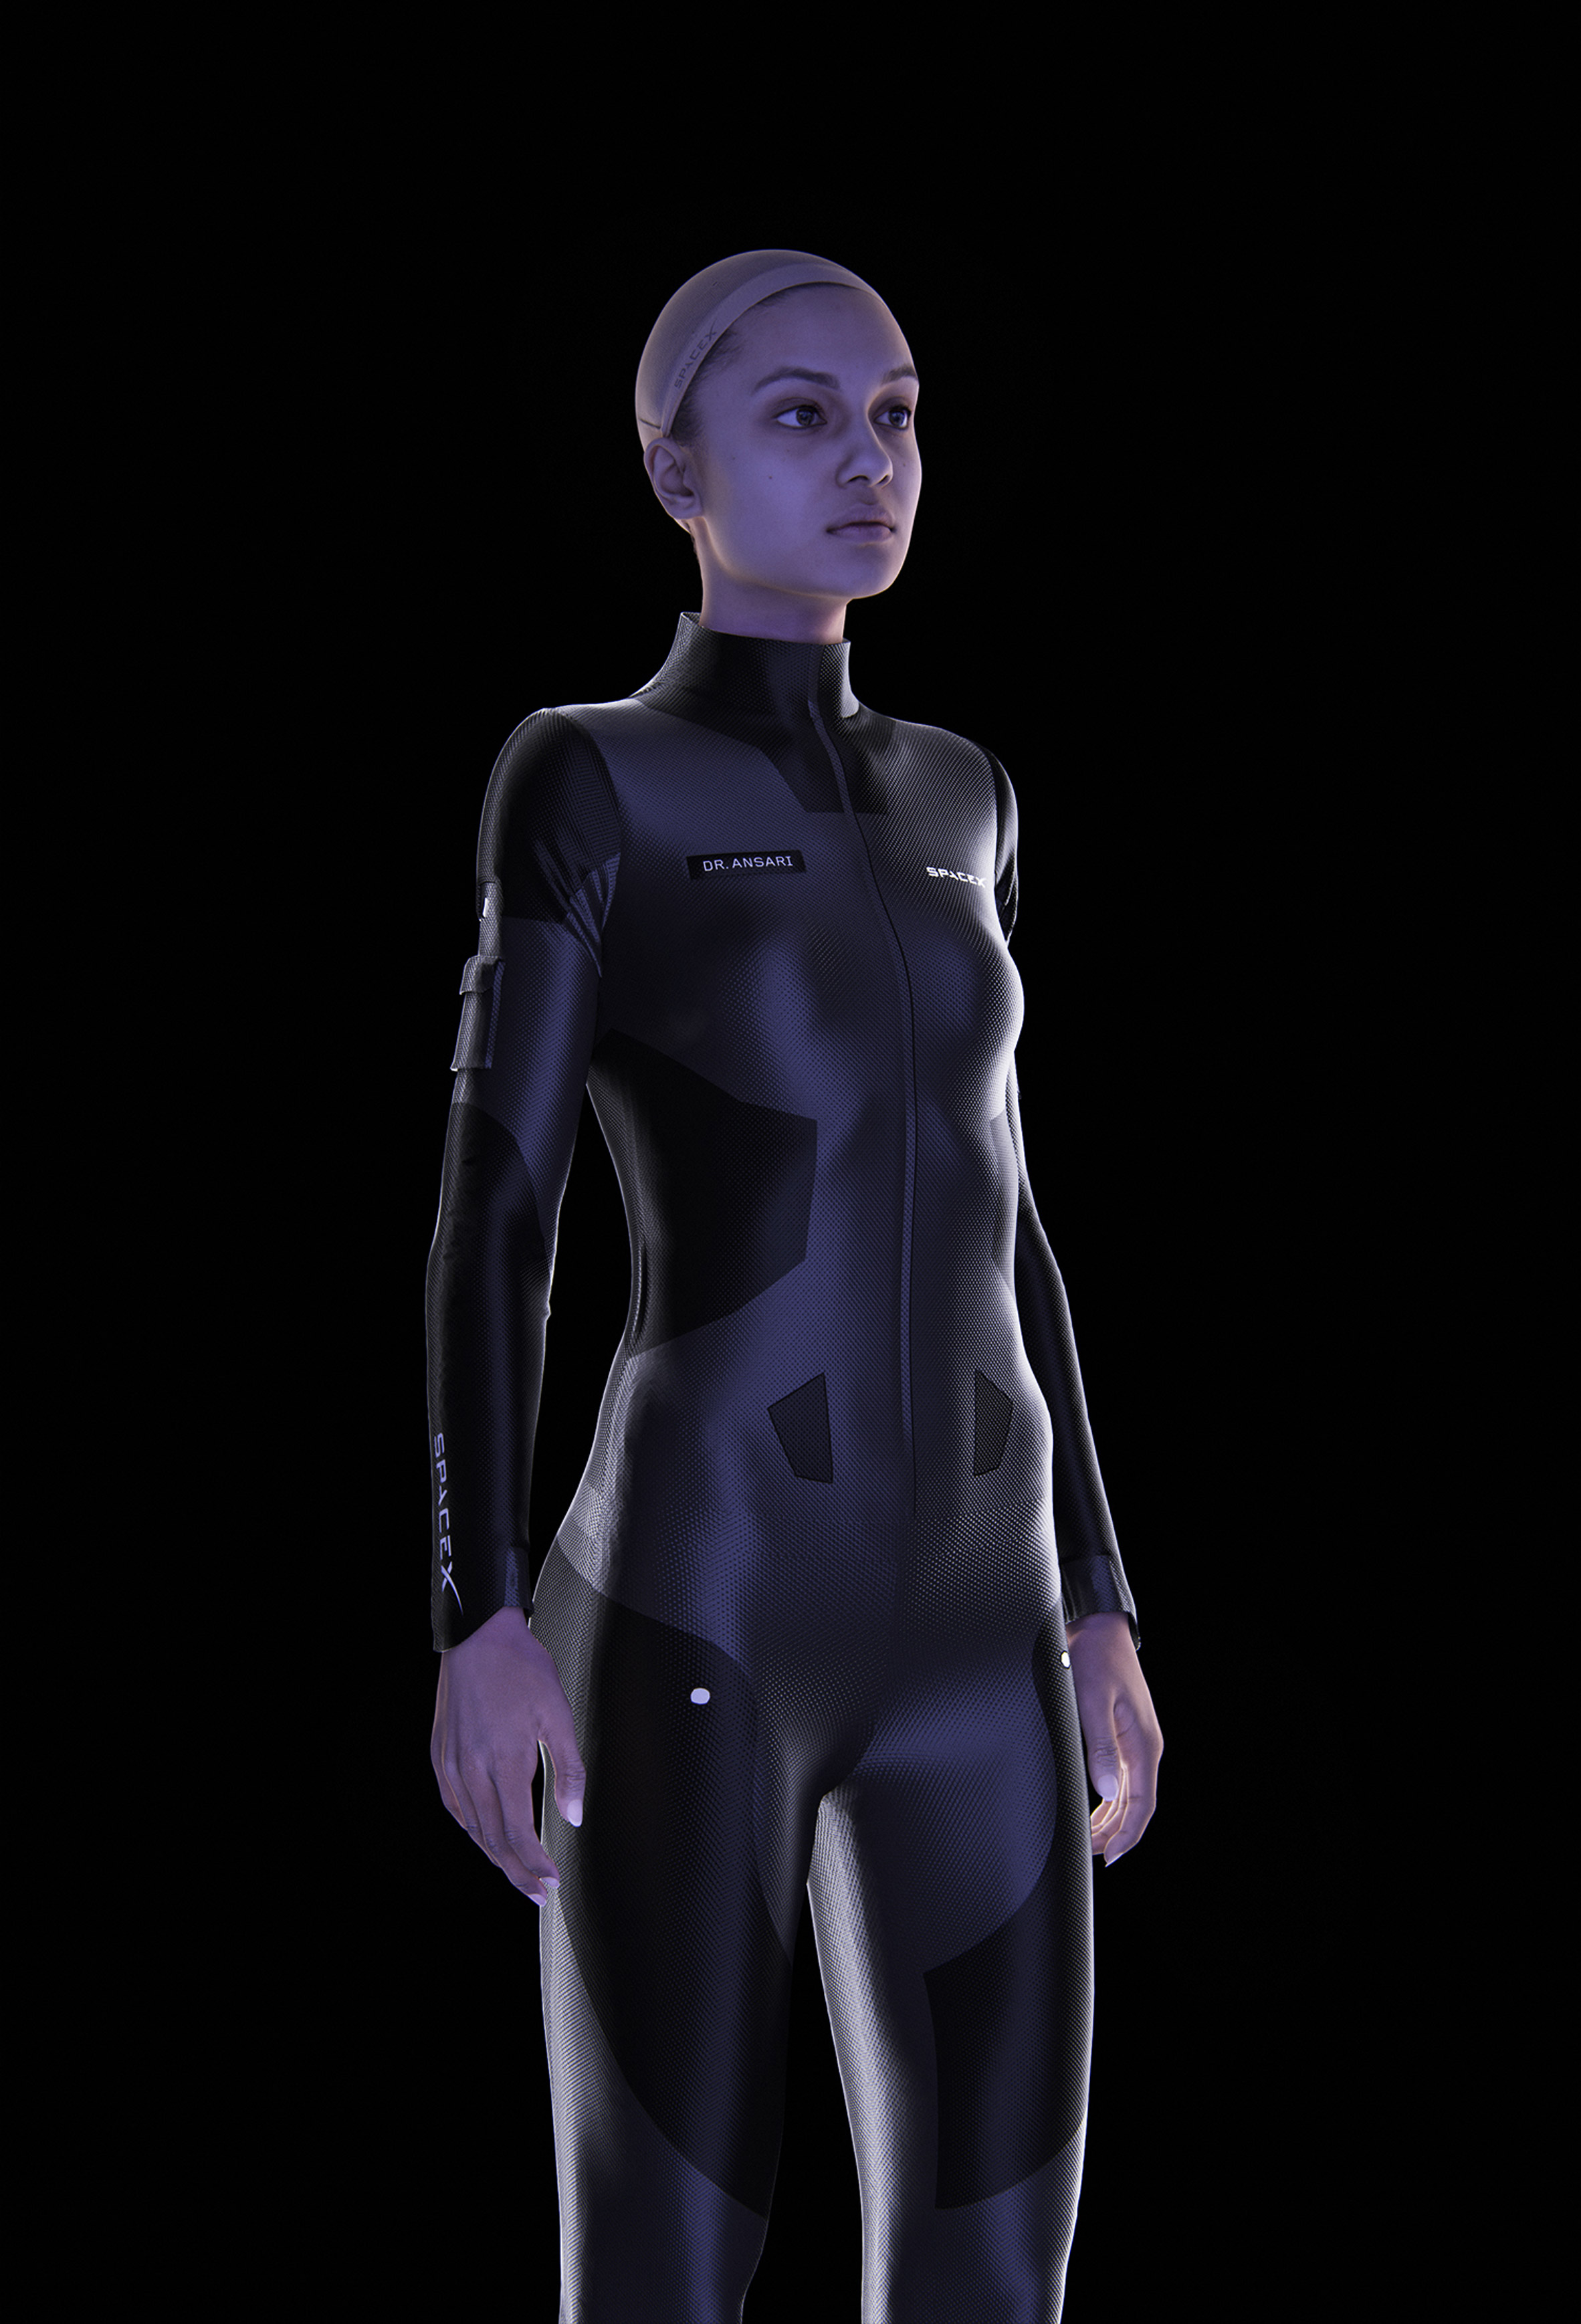 Clément Balavoine designs space suits to keep Mars travellers healthy